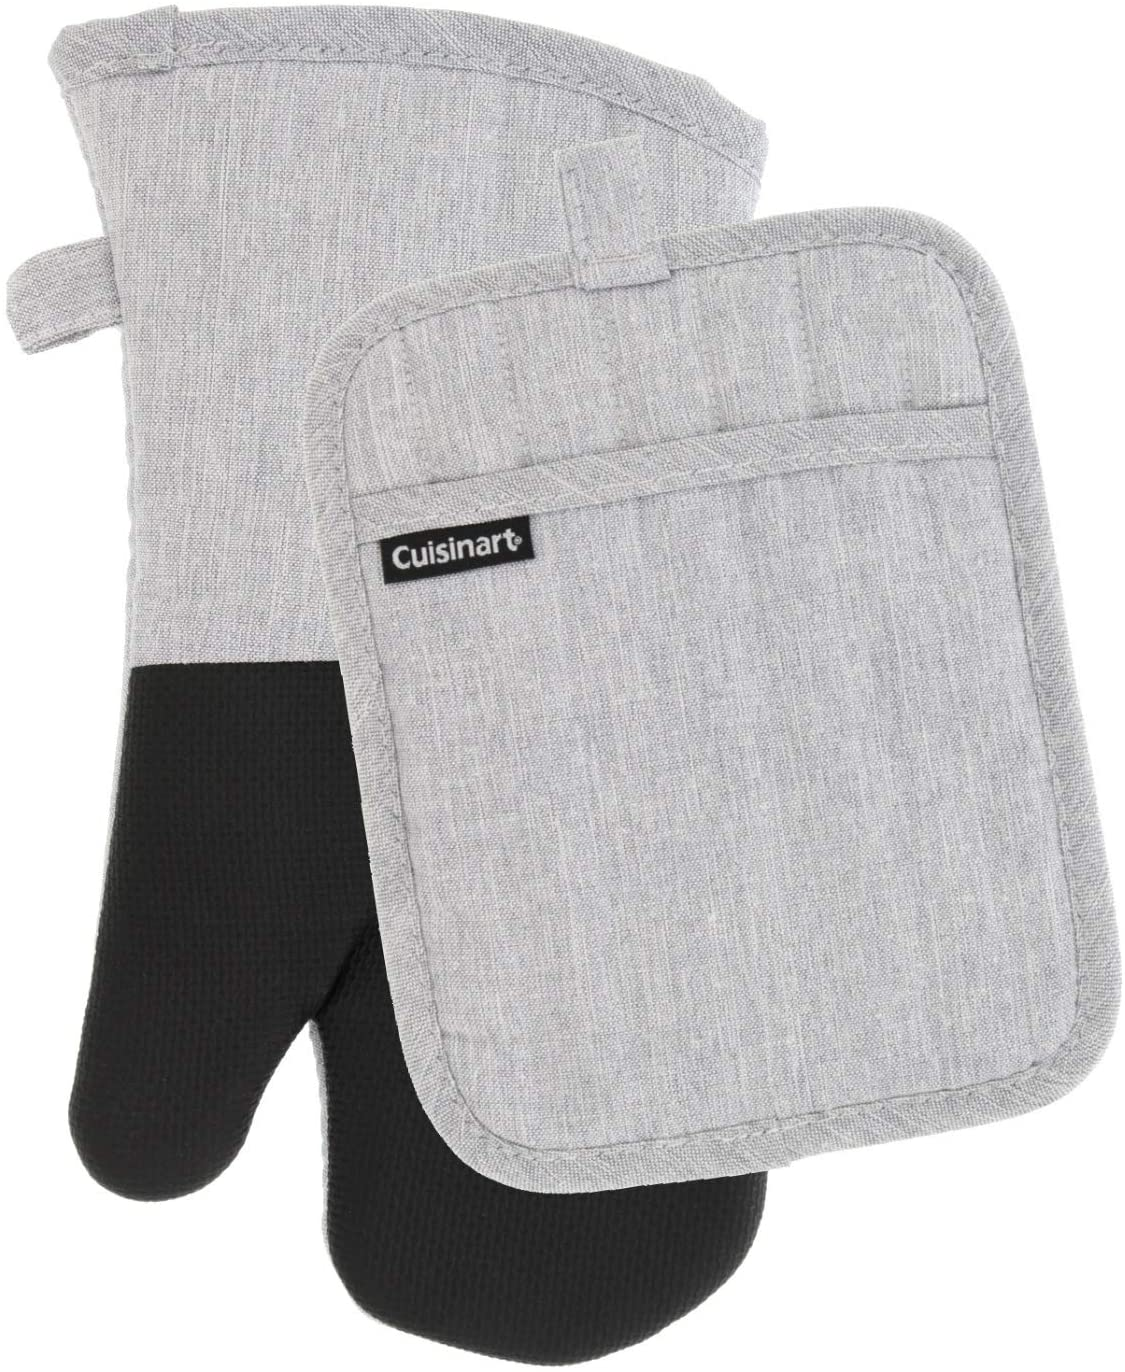 Cuisinart Chambray Neoprene Oven Mitt and Potholder Set, 2 Pack – Heat Resistant to 400 F – Handle Hot Items Safely – Non-Slip Grip Oven Mitt and Pot Holder with Hanging Loop – Light Grey